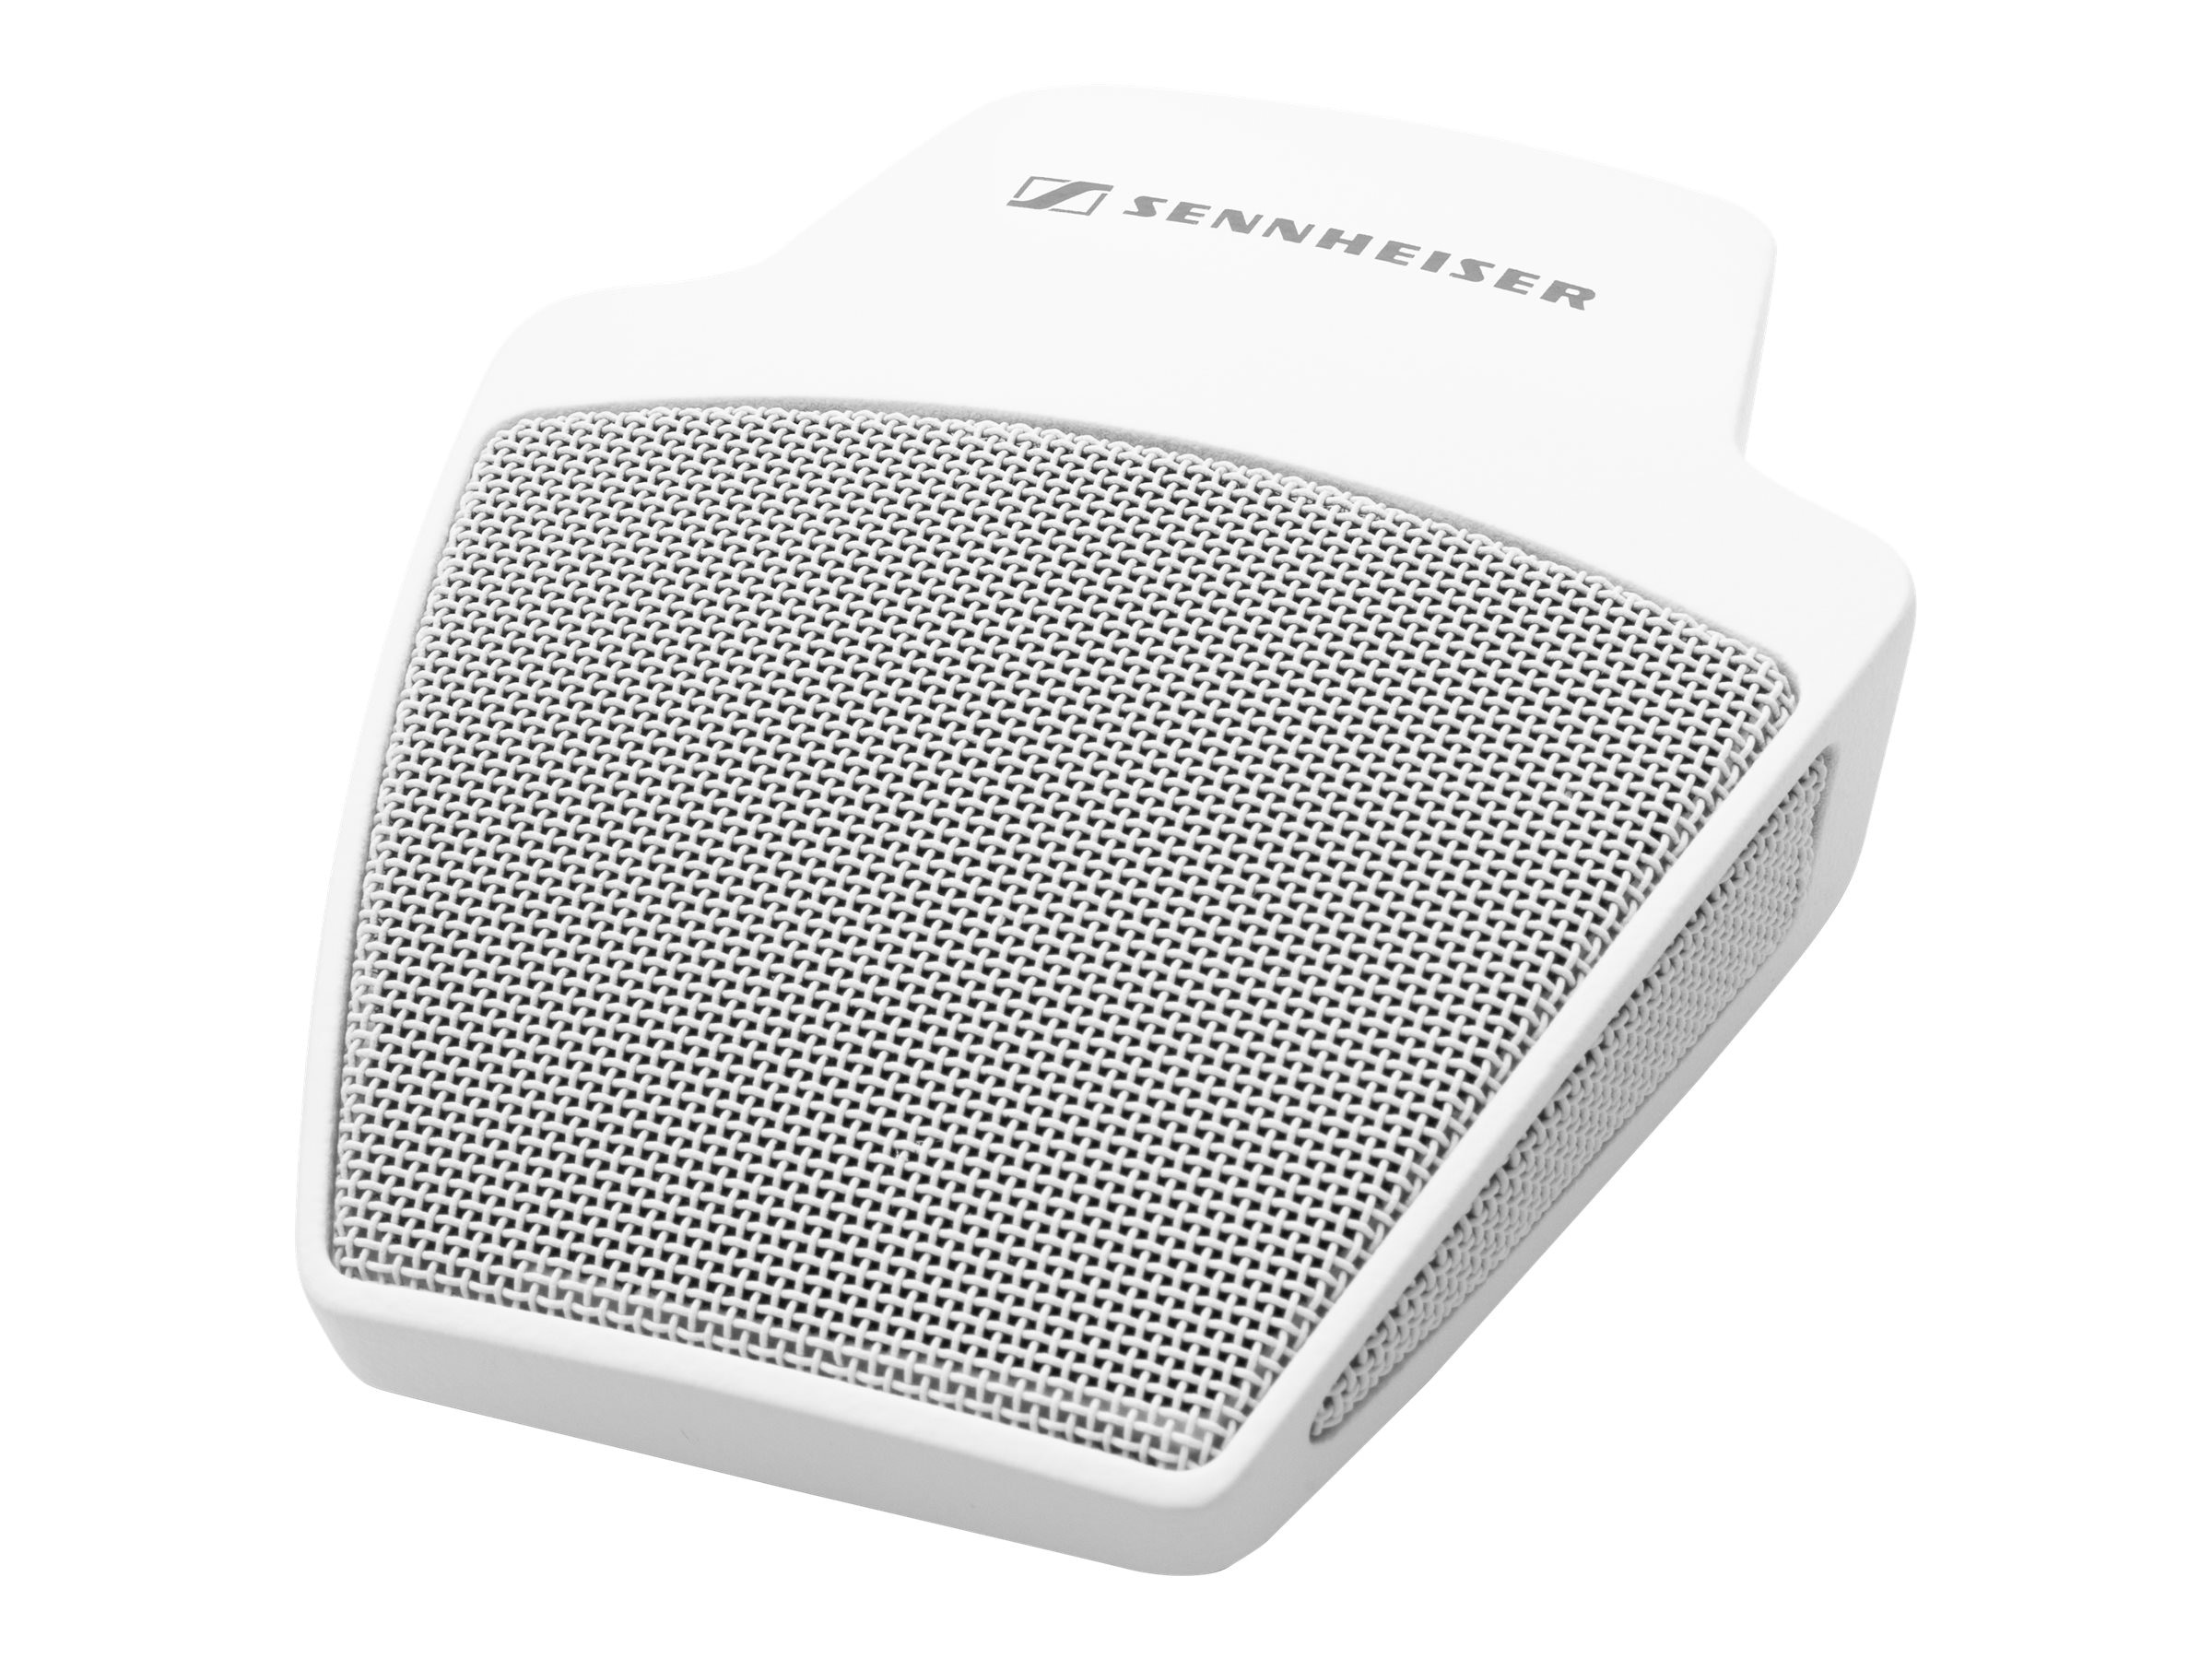 Sennheiser SpeechLine Wired Microphone Cardioid On-Table Boundary Mic, White, 505613